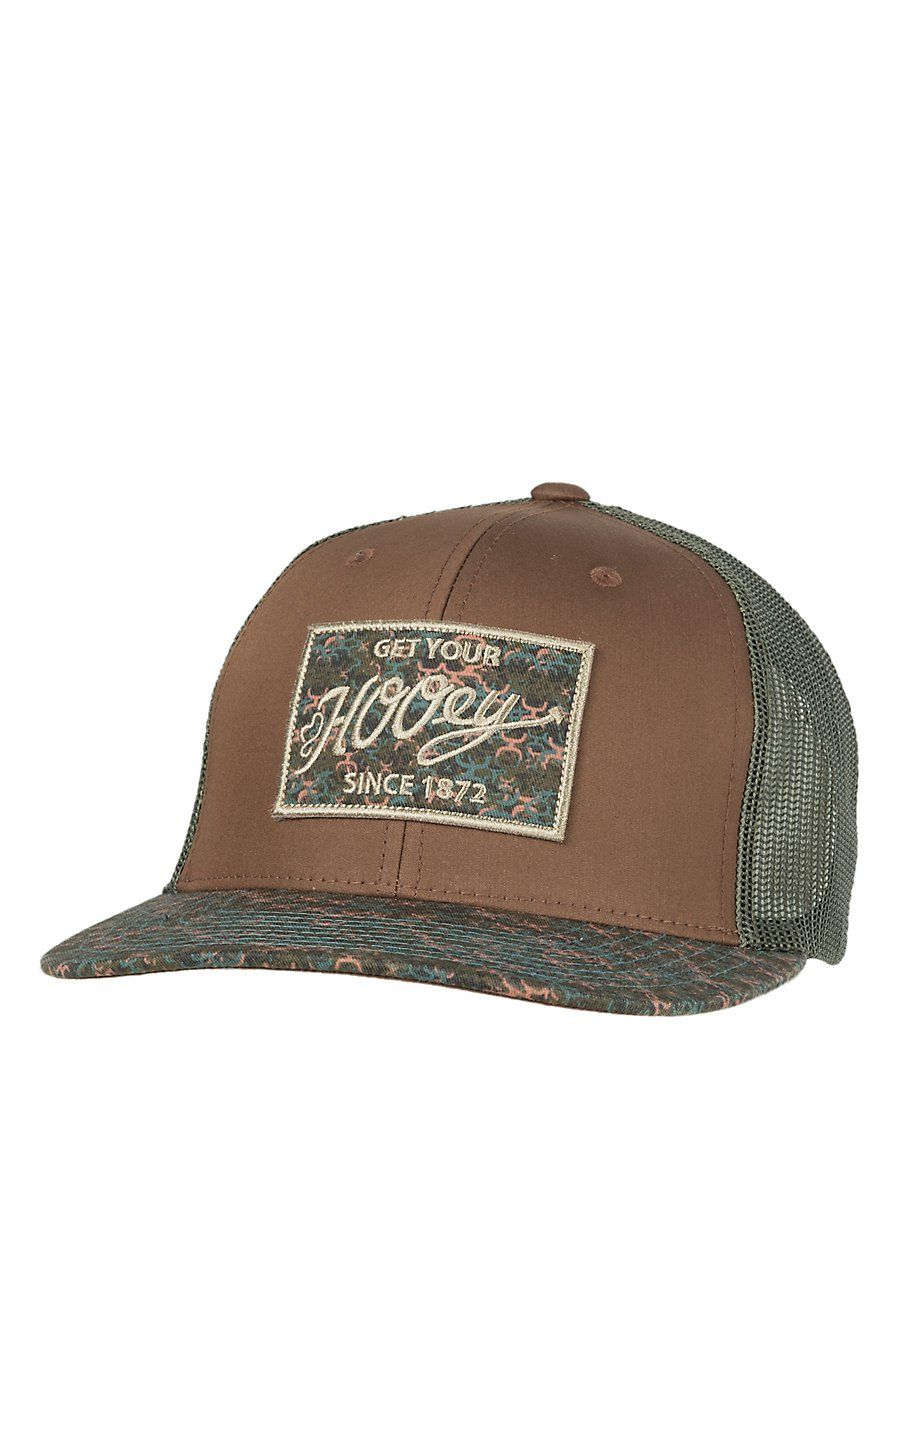 coupon code for get your hooey hat cb8d9 6a382